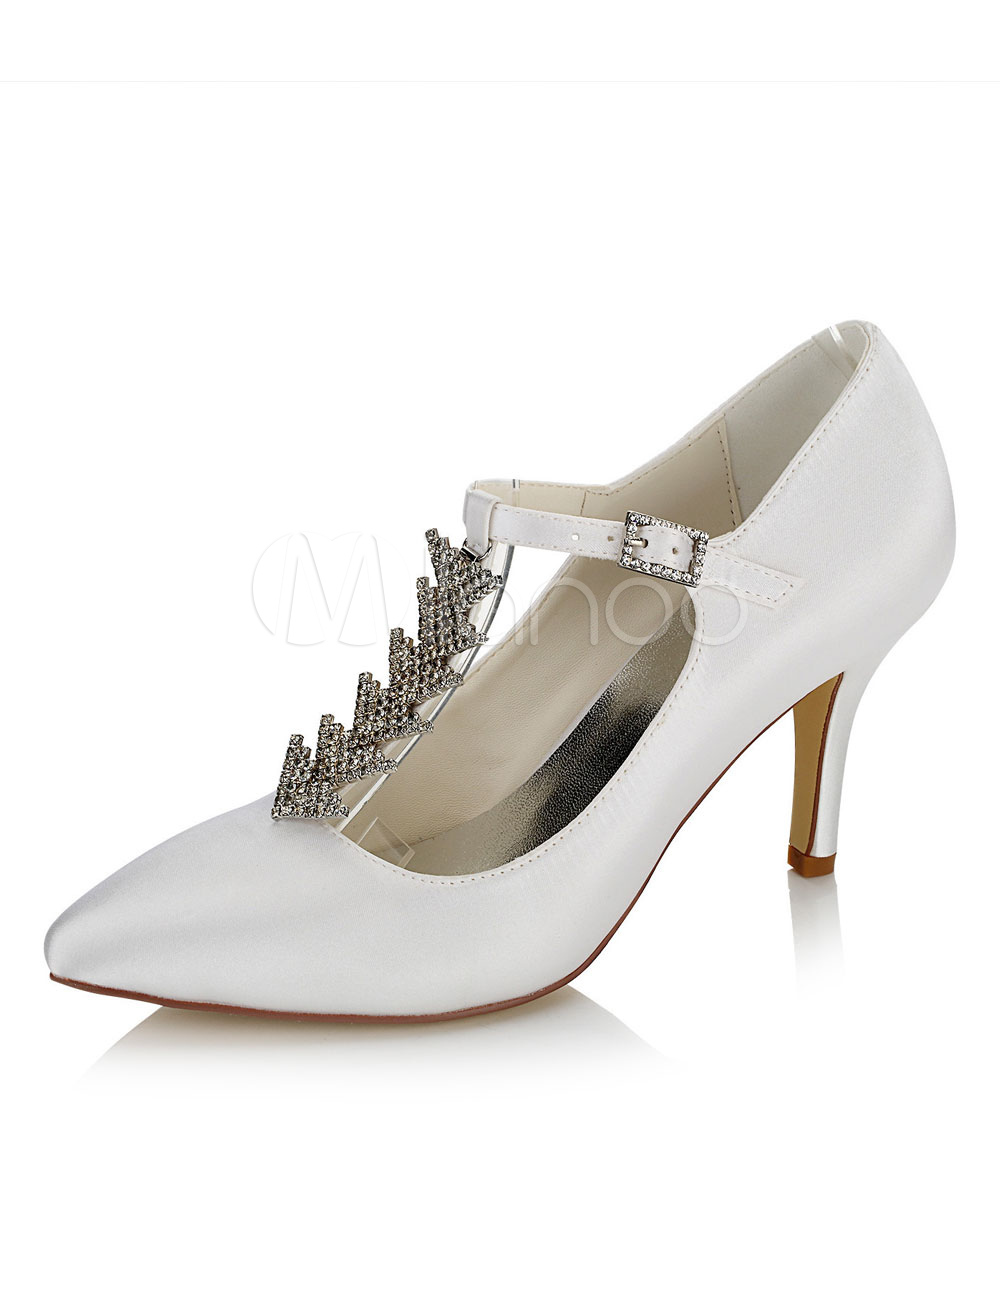 Buy White Wedding Shoes Satin High Heel Pointed Toe Rhinestones T Type Bridal Shoes for $55.09 in Milanoo store